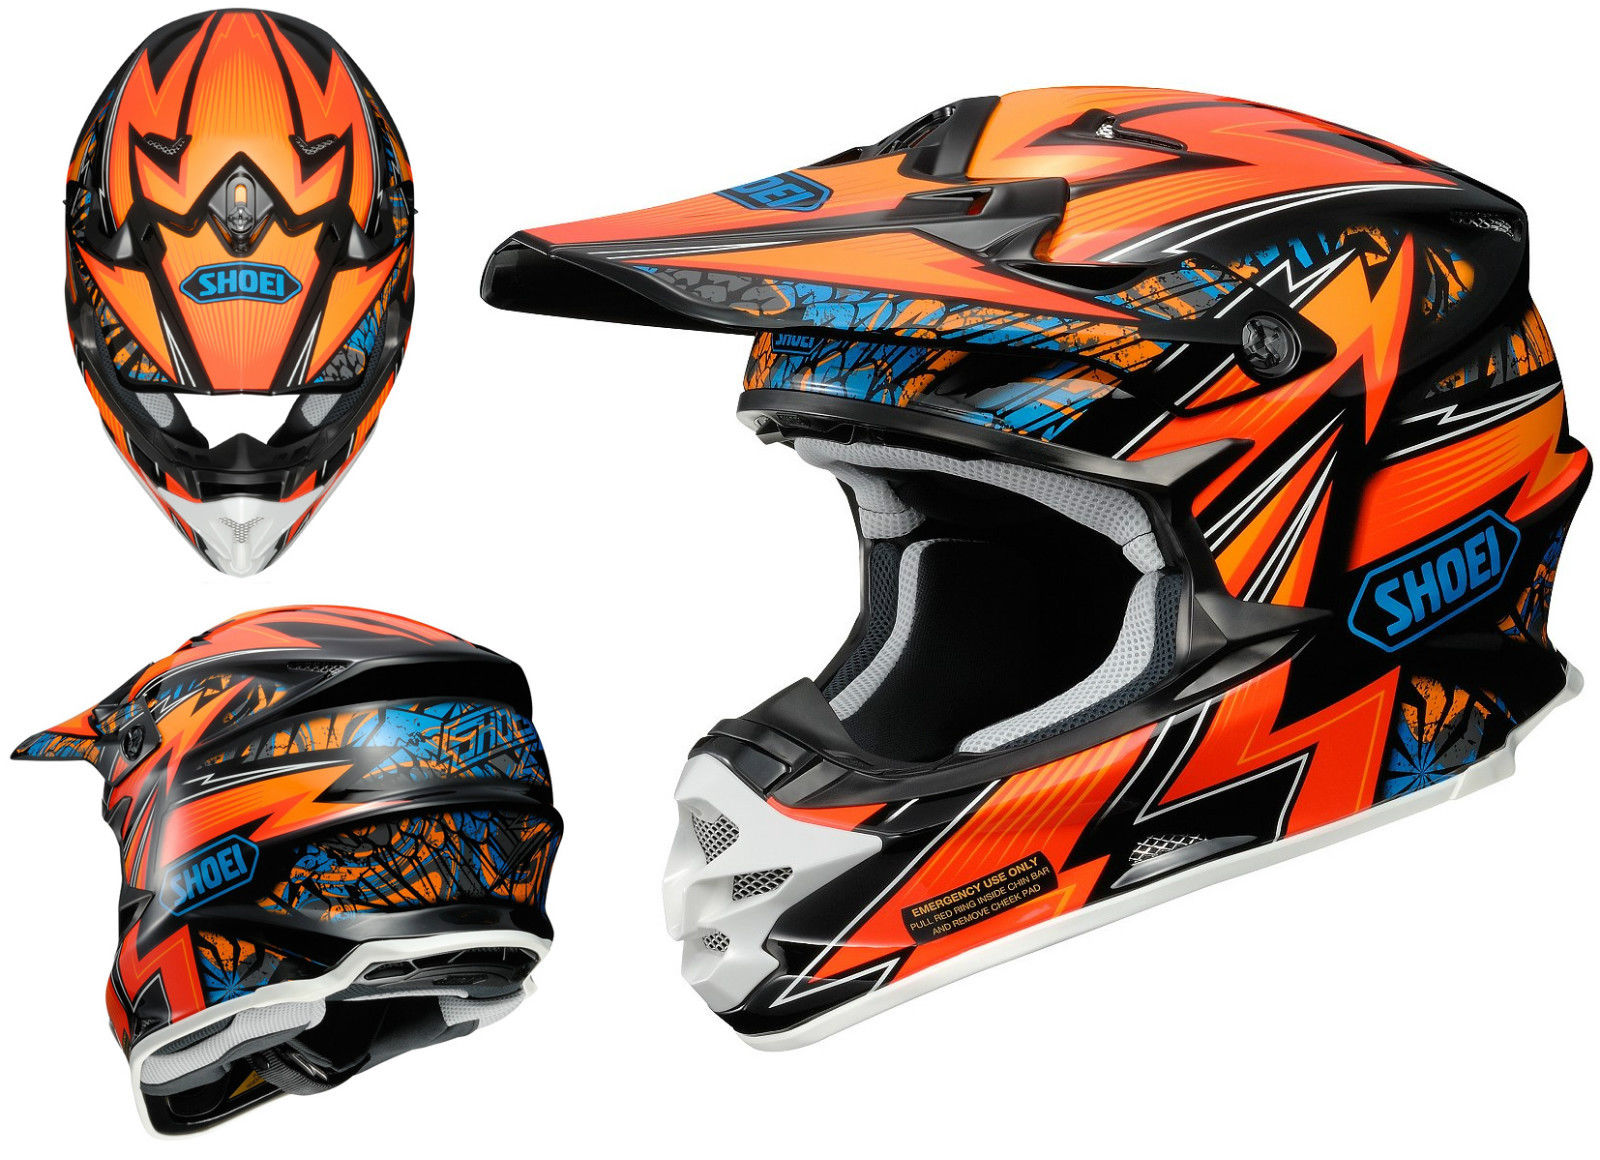 shoei vfx w motocross mx helmet maelstrom tc 8 orange. Black Bedroom Furniture Sets. Home Design Ideas